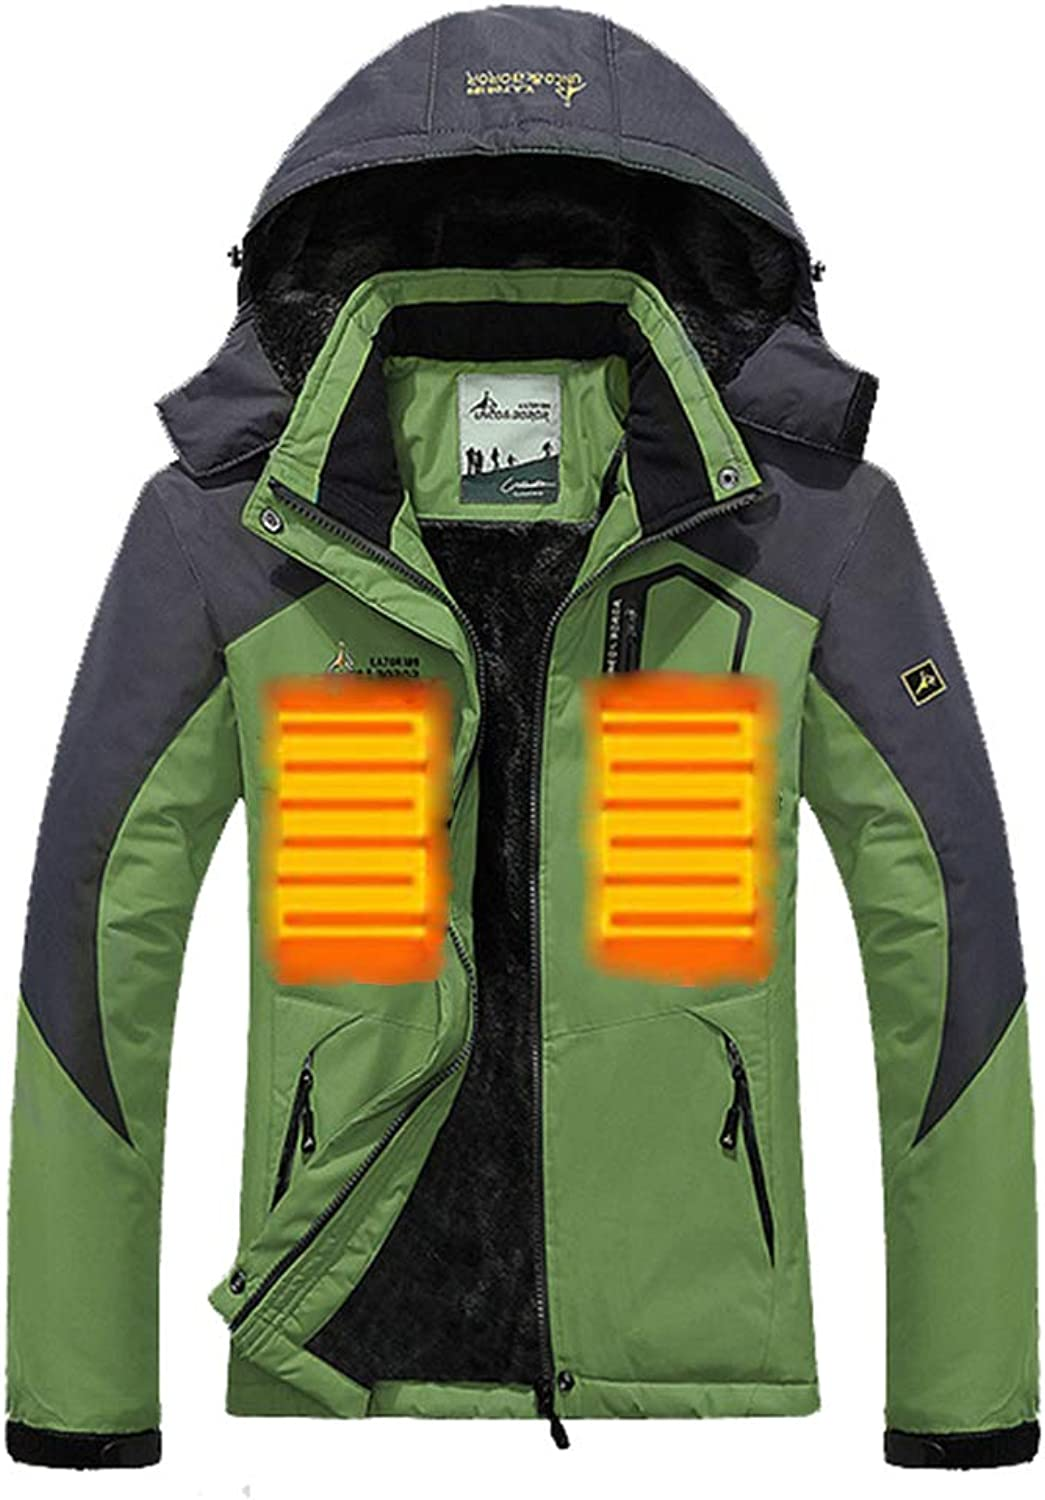 Women's Ski Jacket Winter Jacket Waterproof 3 in 1 Mountain Coat Windproof,Green,L